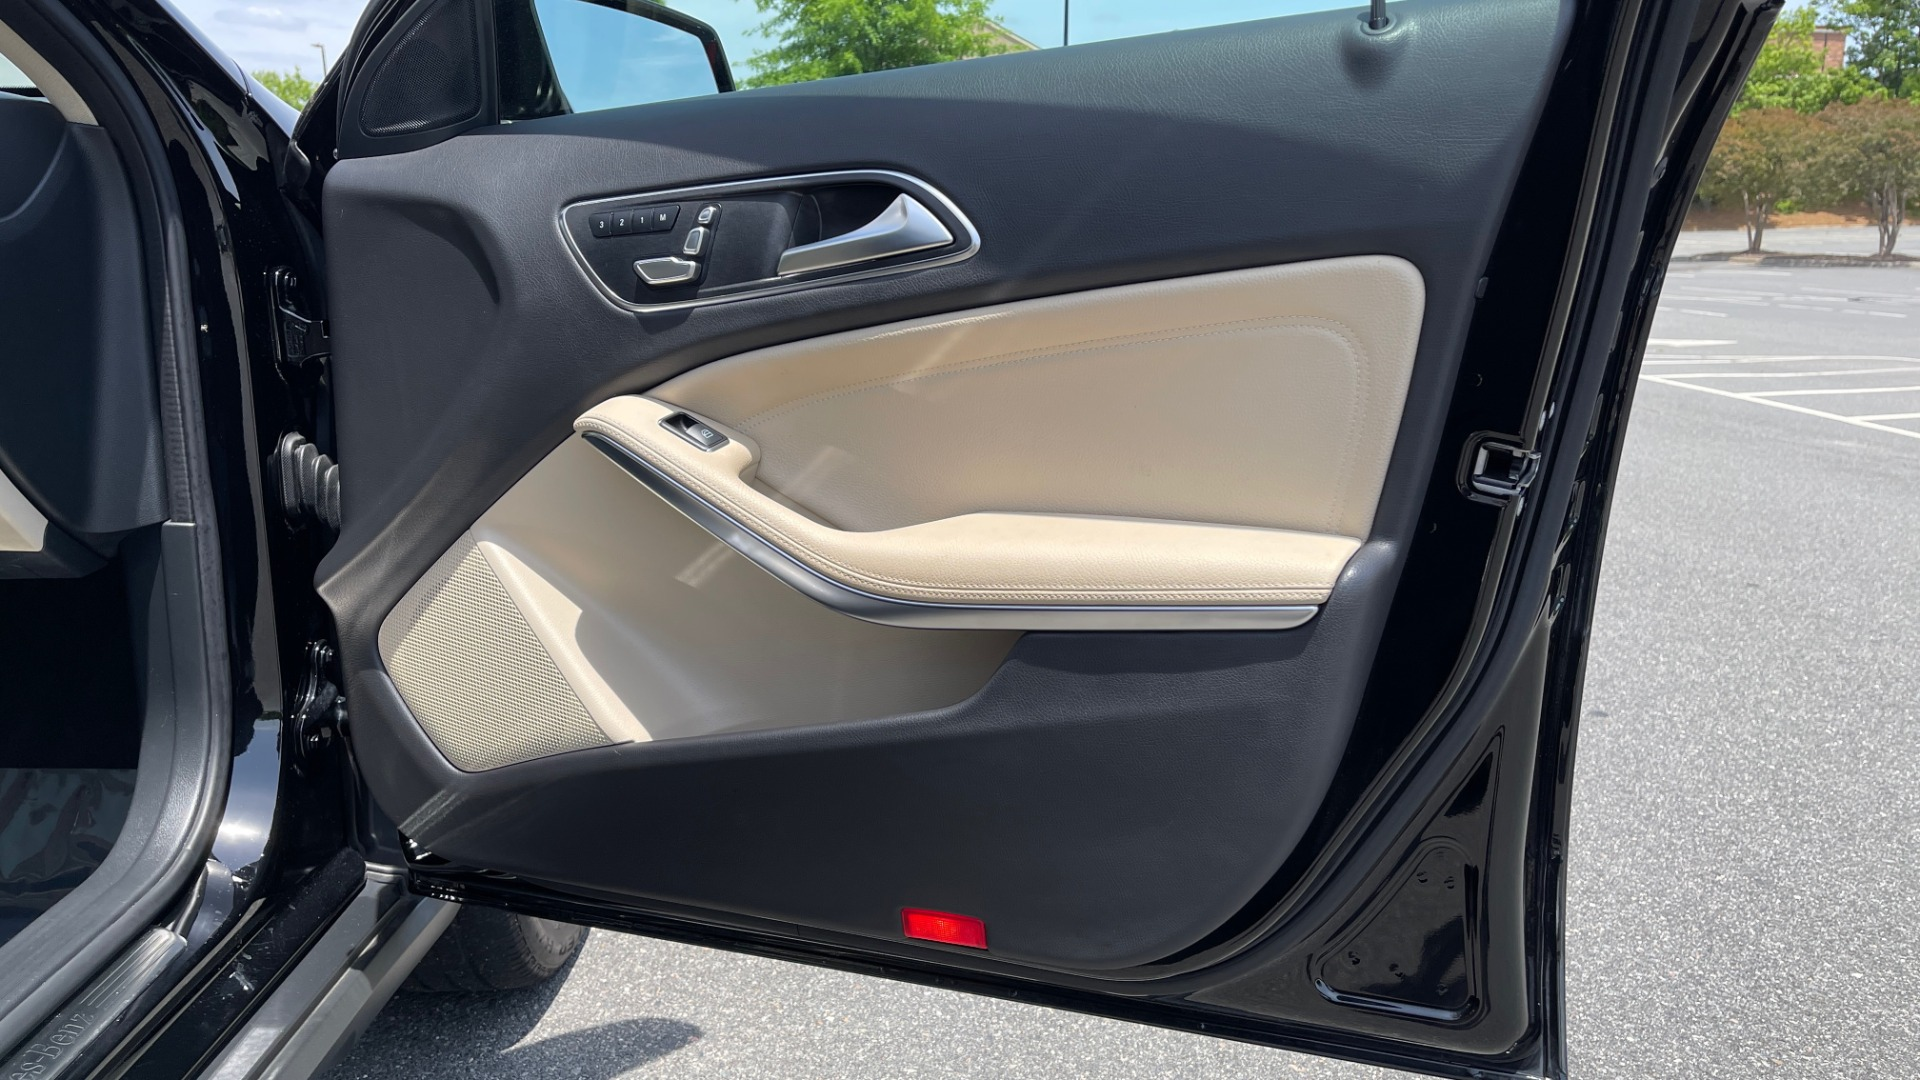 Used 2018 Mercedes-Benz GLA 250 4MATIC SUV / PANO-ROOF / HTD STS / BLIND SPOT ASST / APPLE for sale $31,995 at Formula Imports in Charlotte NC 28227 72